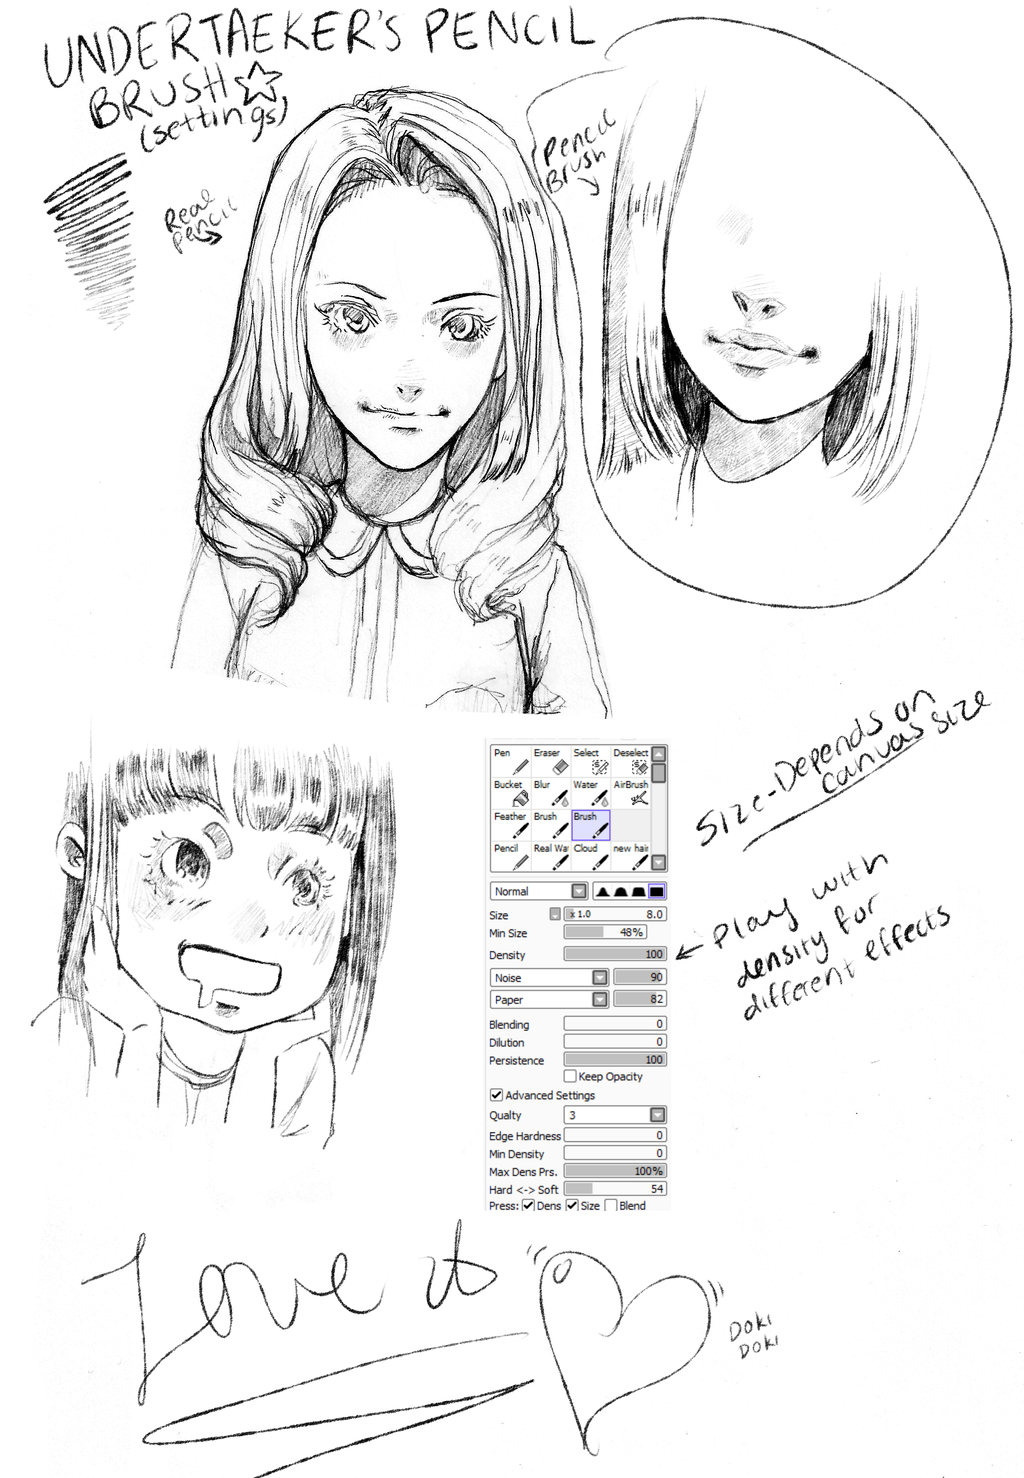 Paint tool sai pencil brush no download by undertaeker